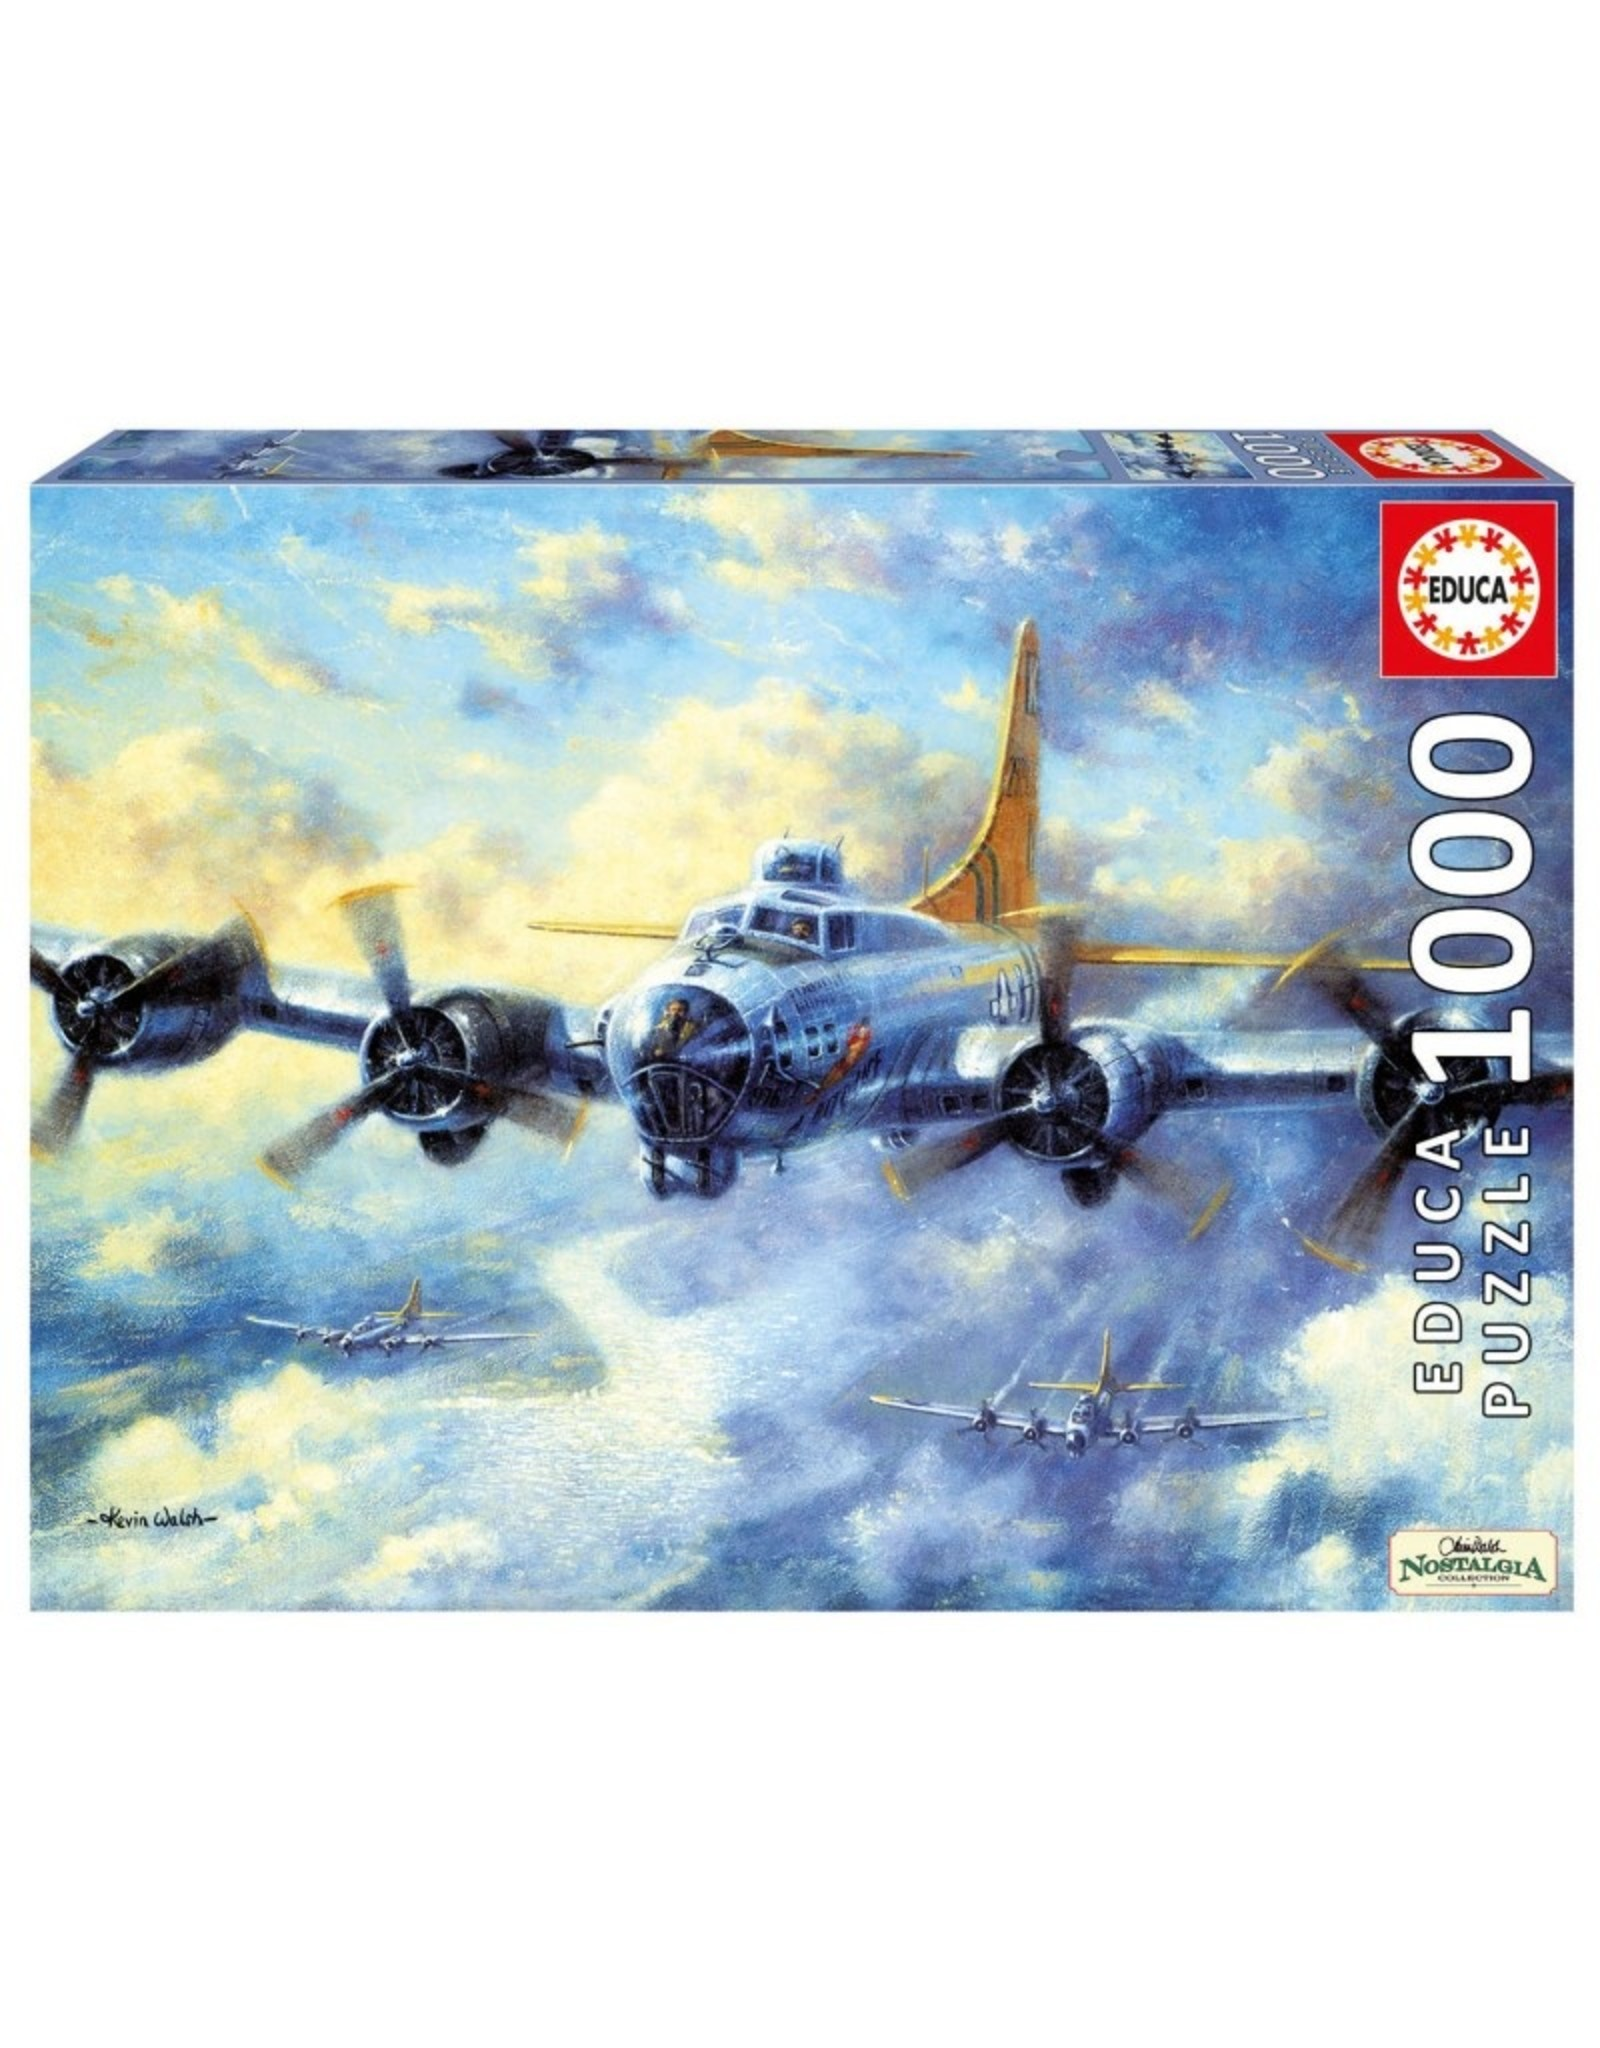 Educa B17G Flying Fortress - 1000 Piece Puzzle